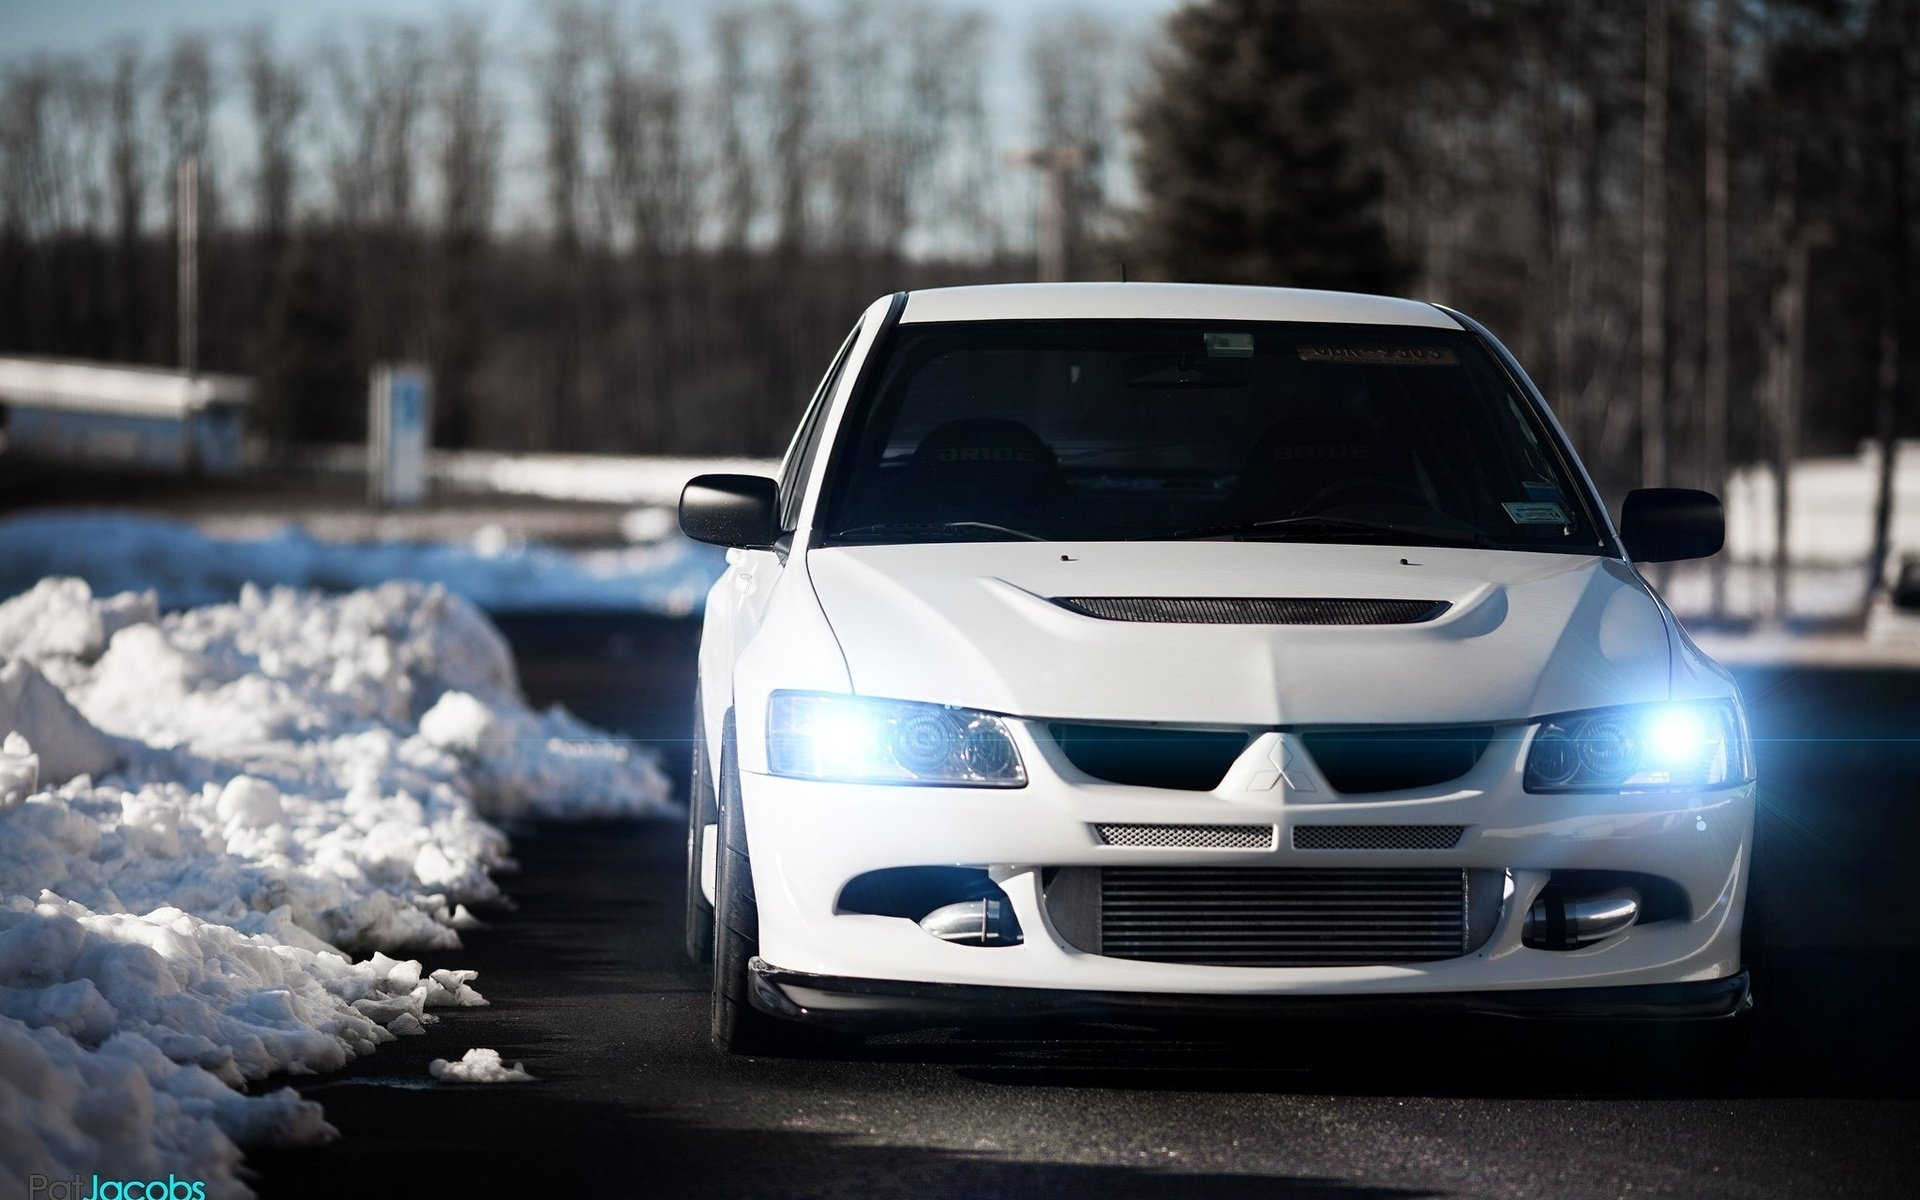 Mitsubishi Lancer Evolution Vii Wallpaper 1920x1200